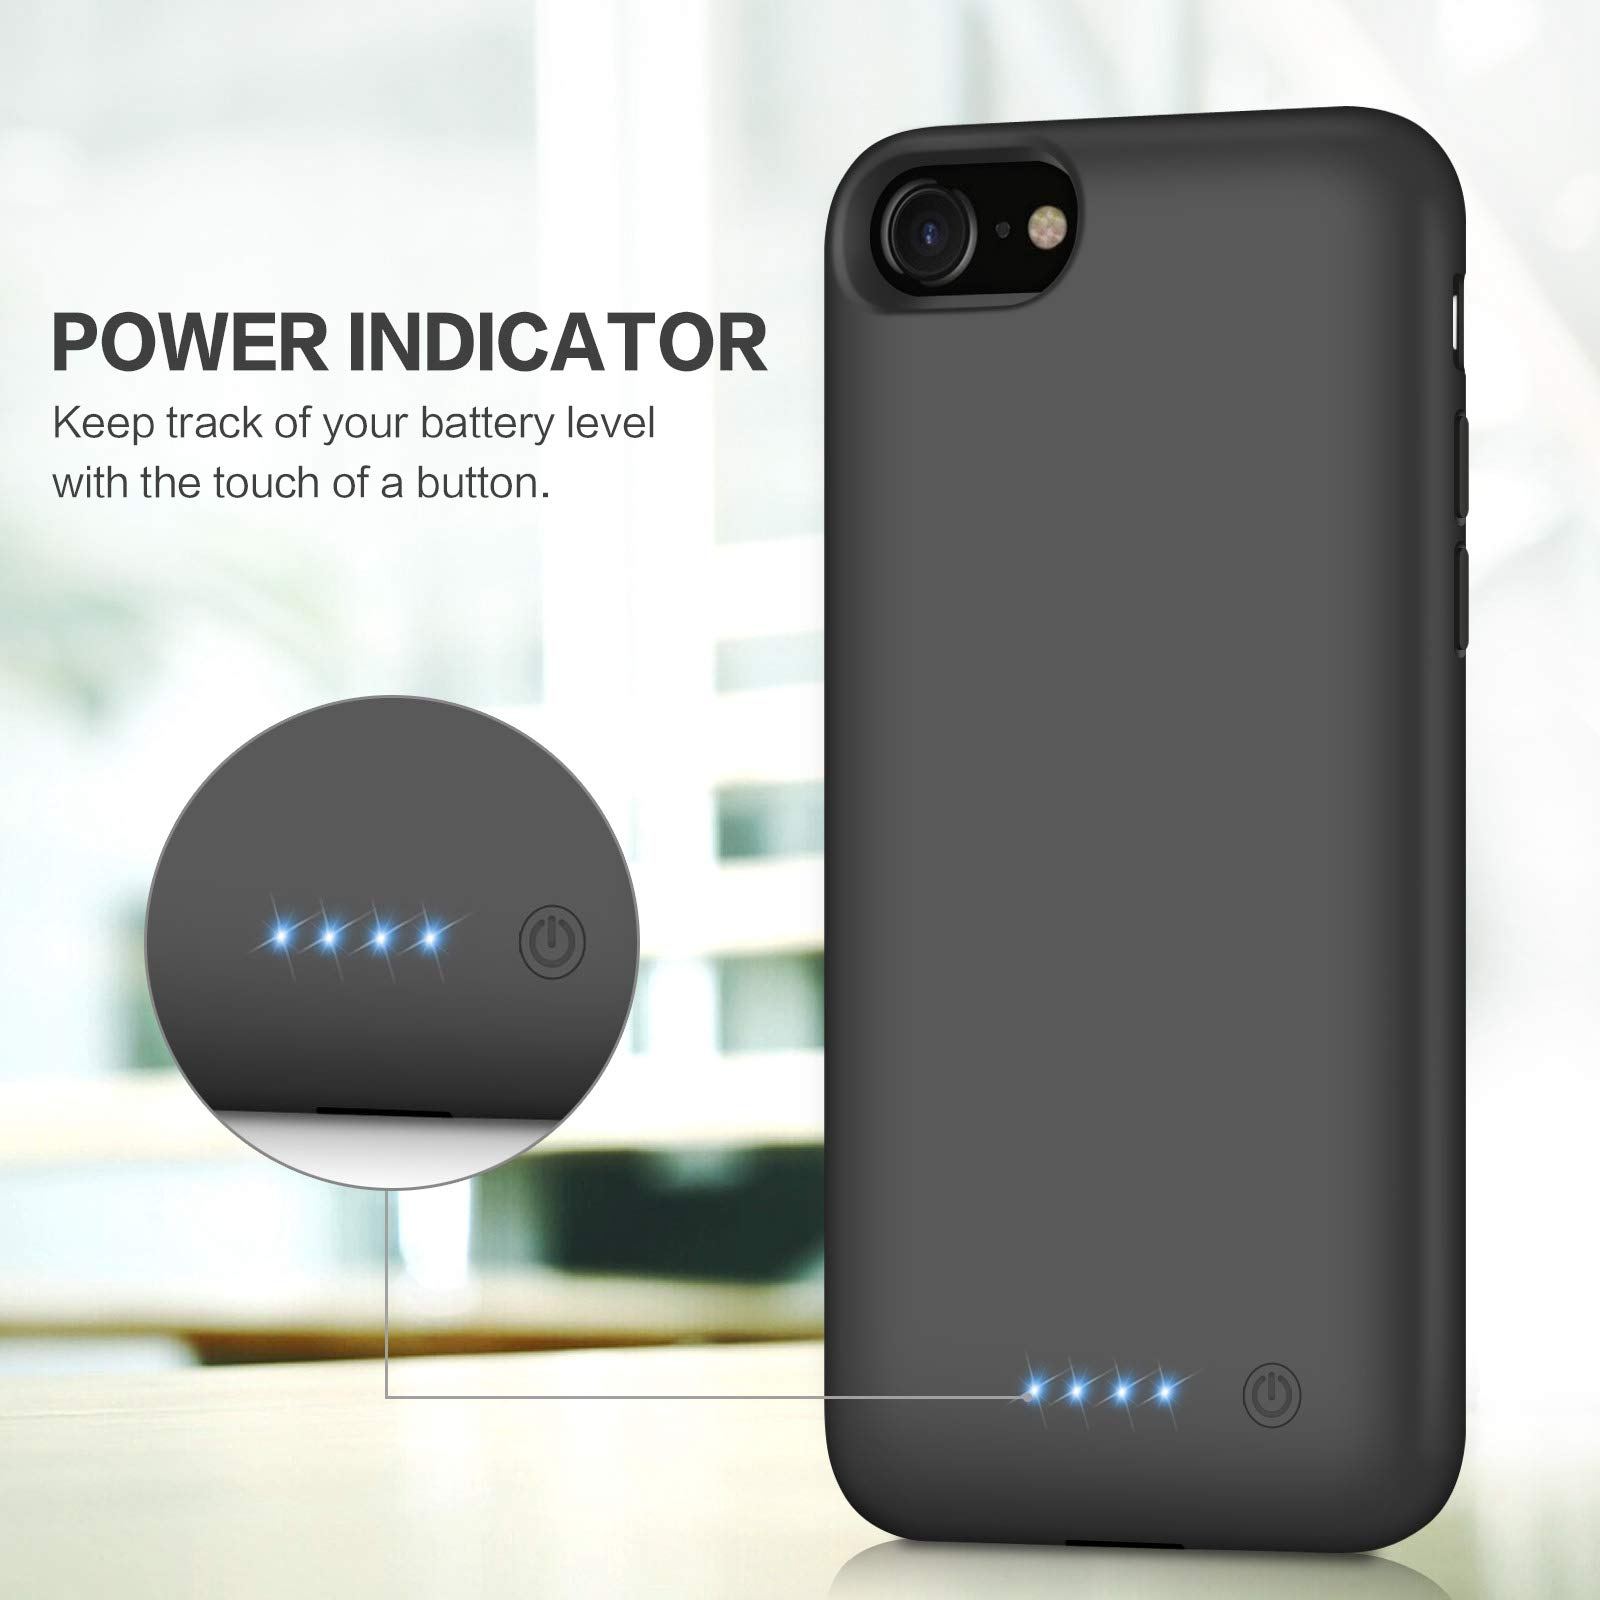 Battery case for iPhone 8/7, Xooparc [6000mah] Upgraded Charging Case Protective Portable Charger Case Rechargeable Extended Battery Pack for Apple iPhone 7/8(4.7') Backup Power Bank Cover (Black) by Xooparc (Image #3)